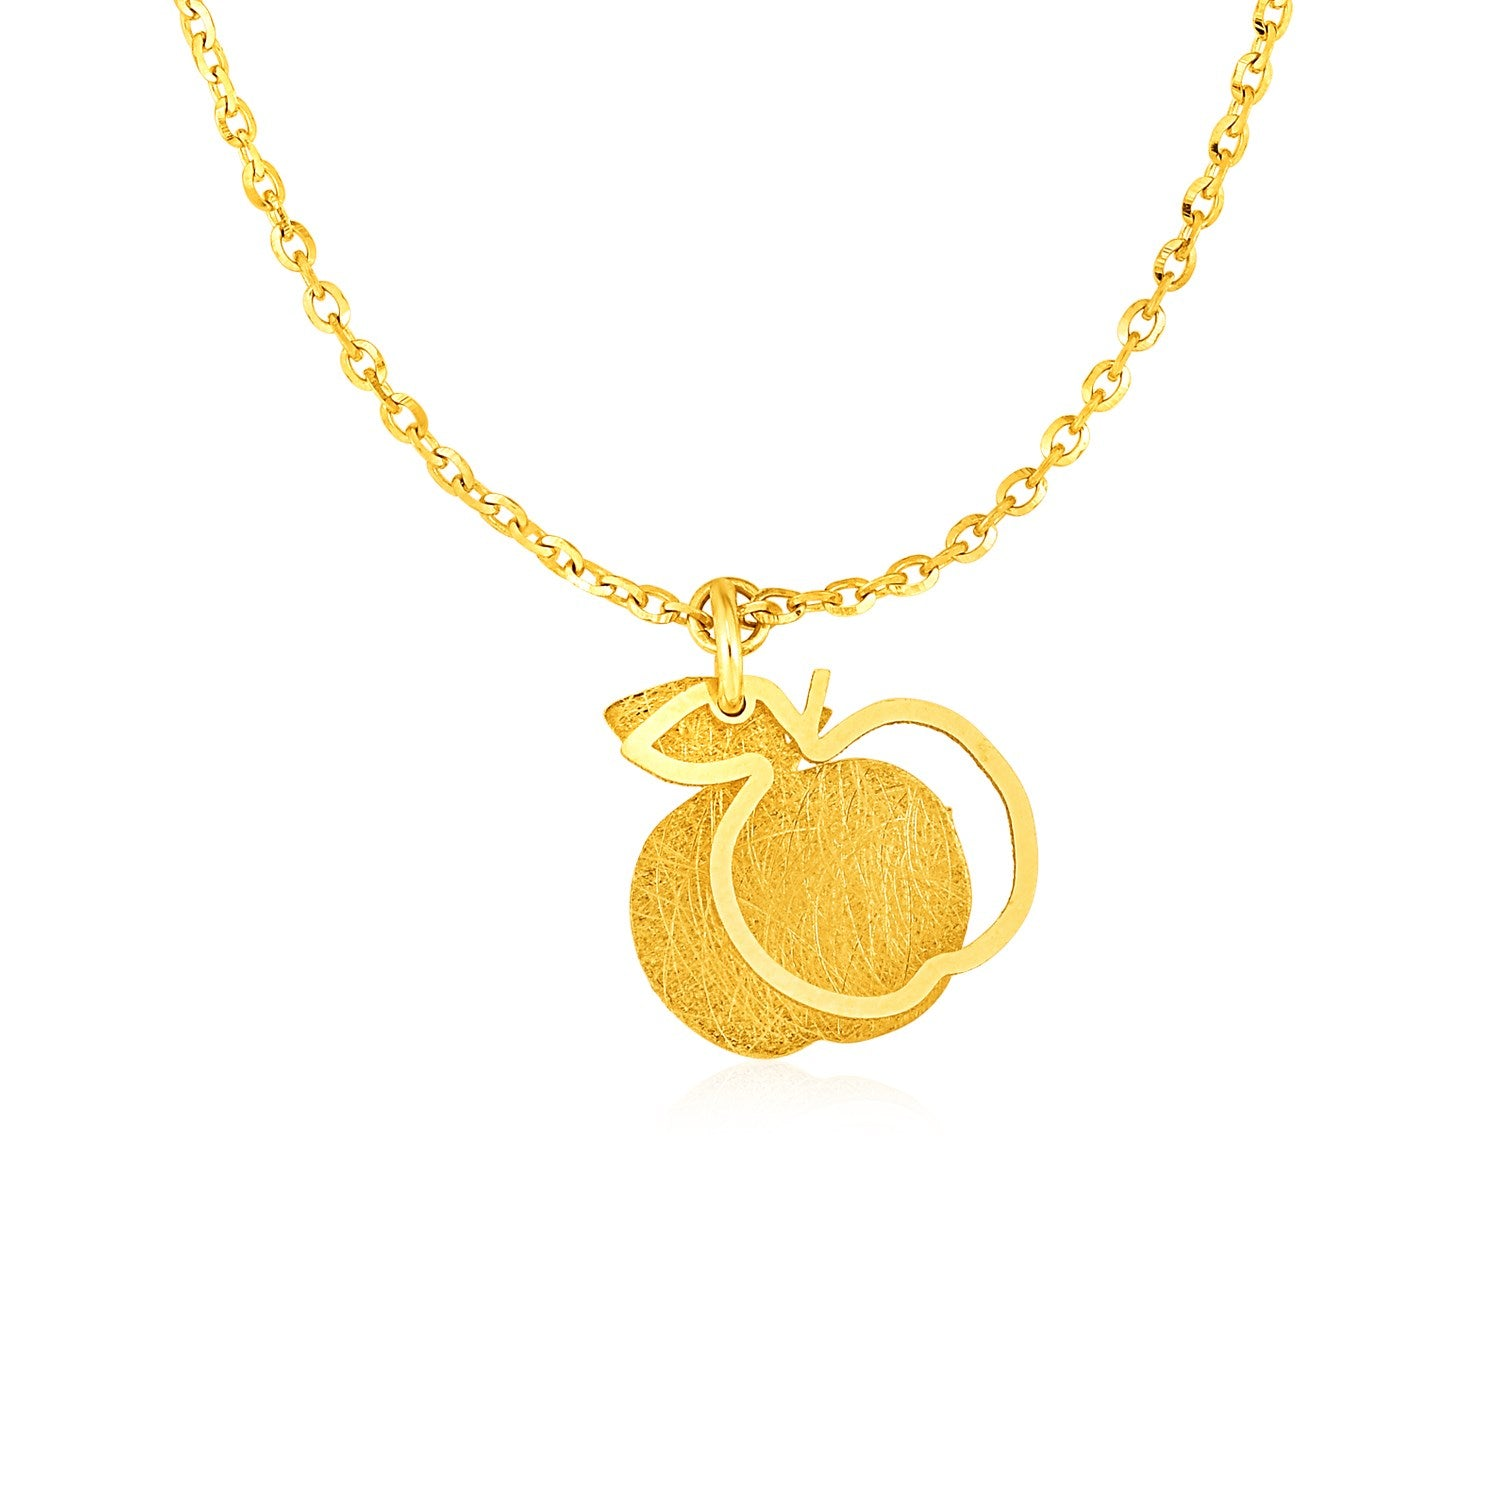 Original New York Style  Two Layer Apple Pendant in 14K Yellow Gold